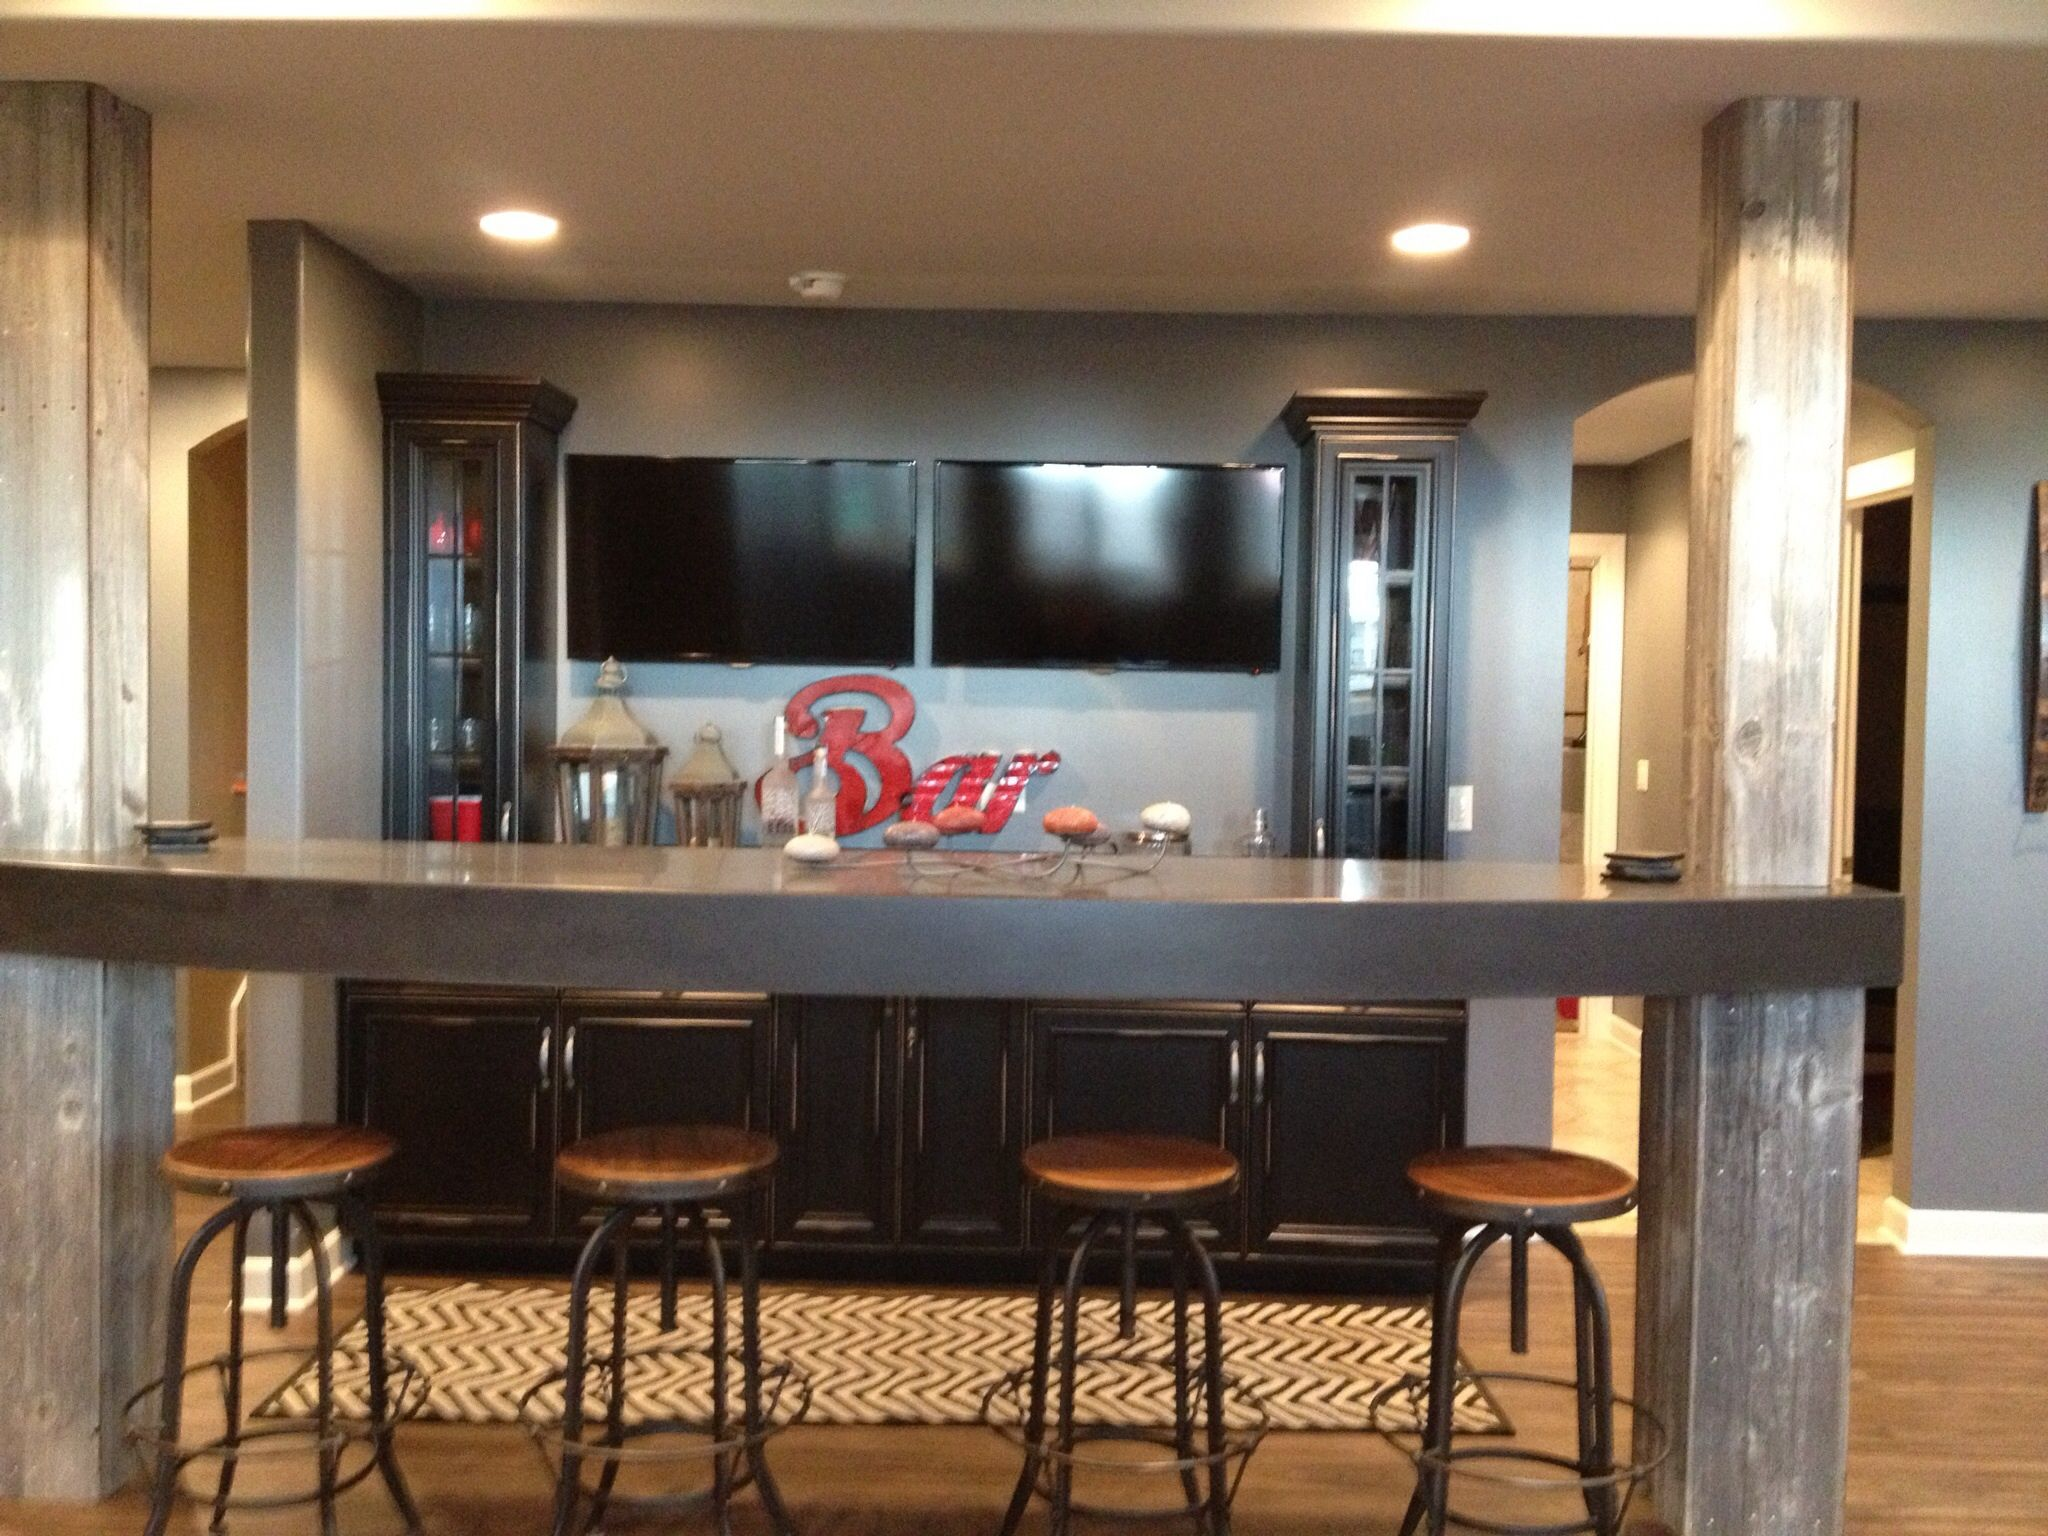 Rustic Basements Basement Barrustic Meets Moderncustom Cabinetry Steelskin